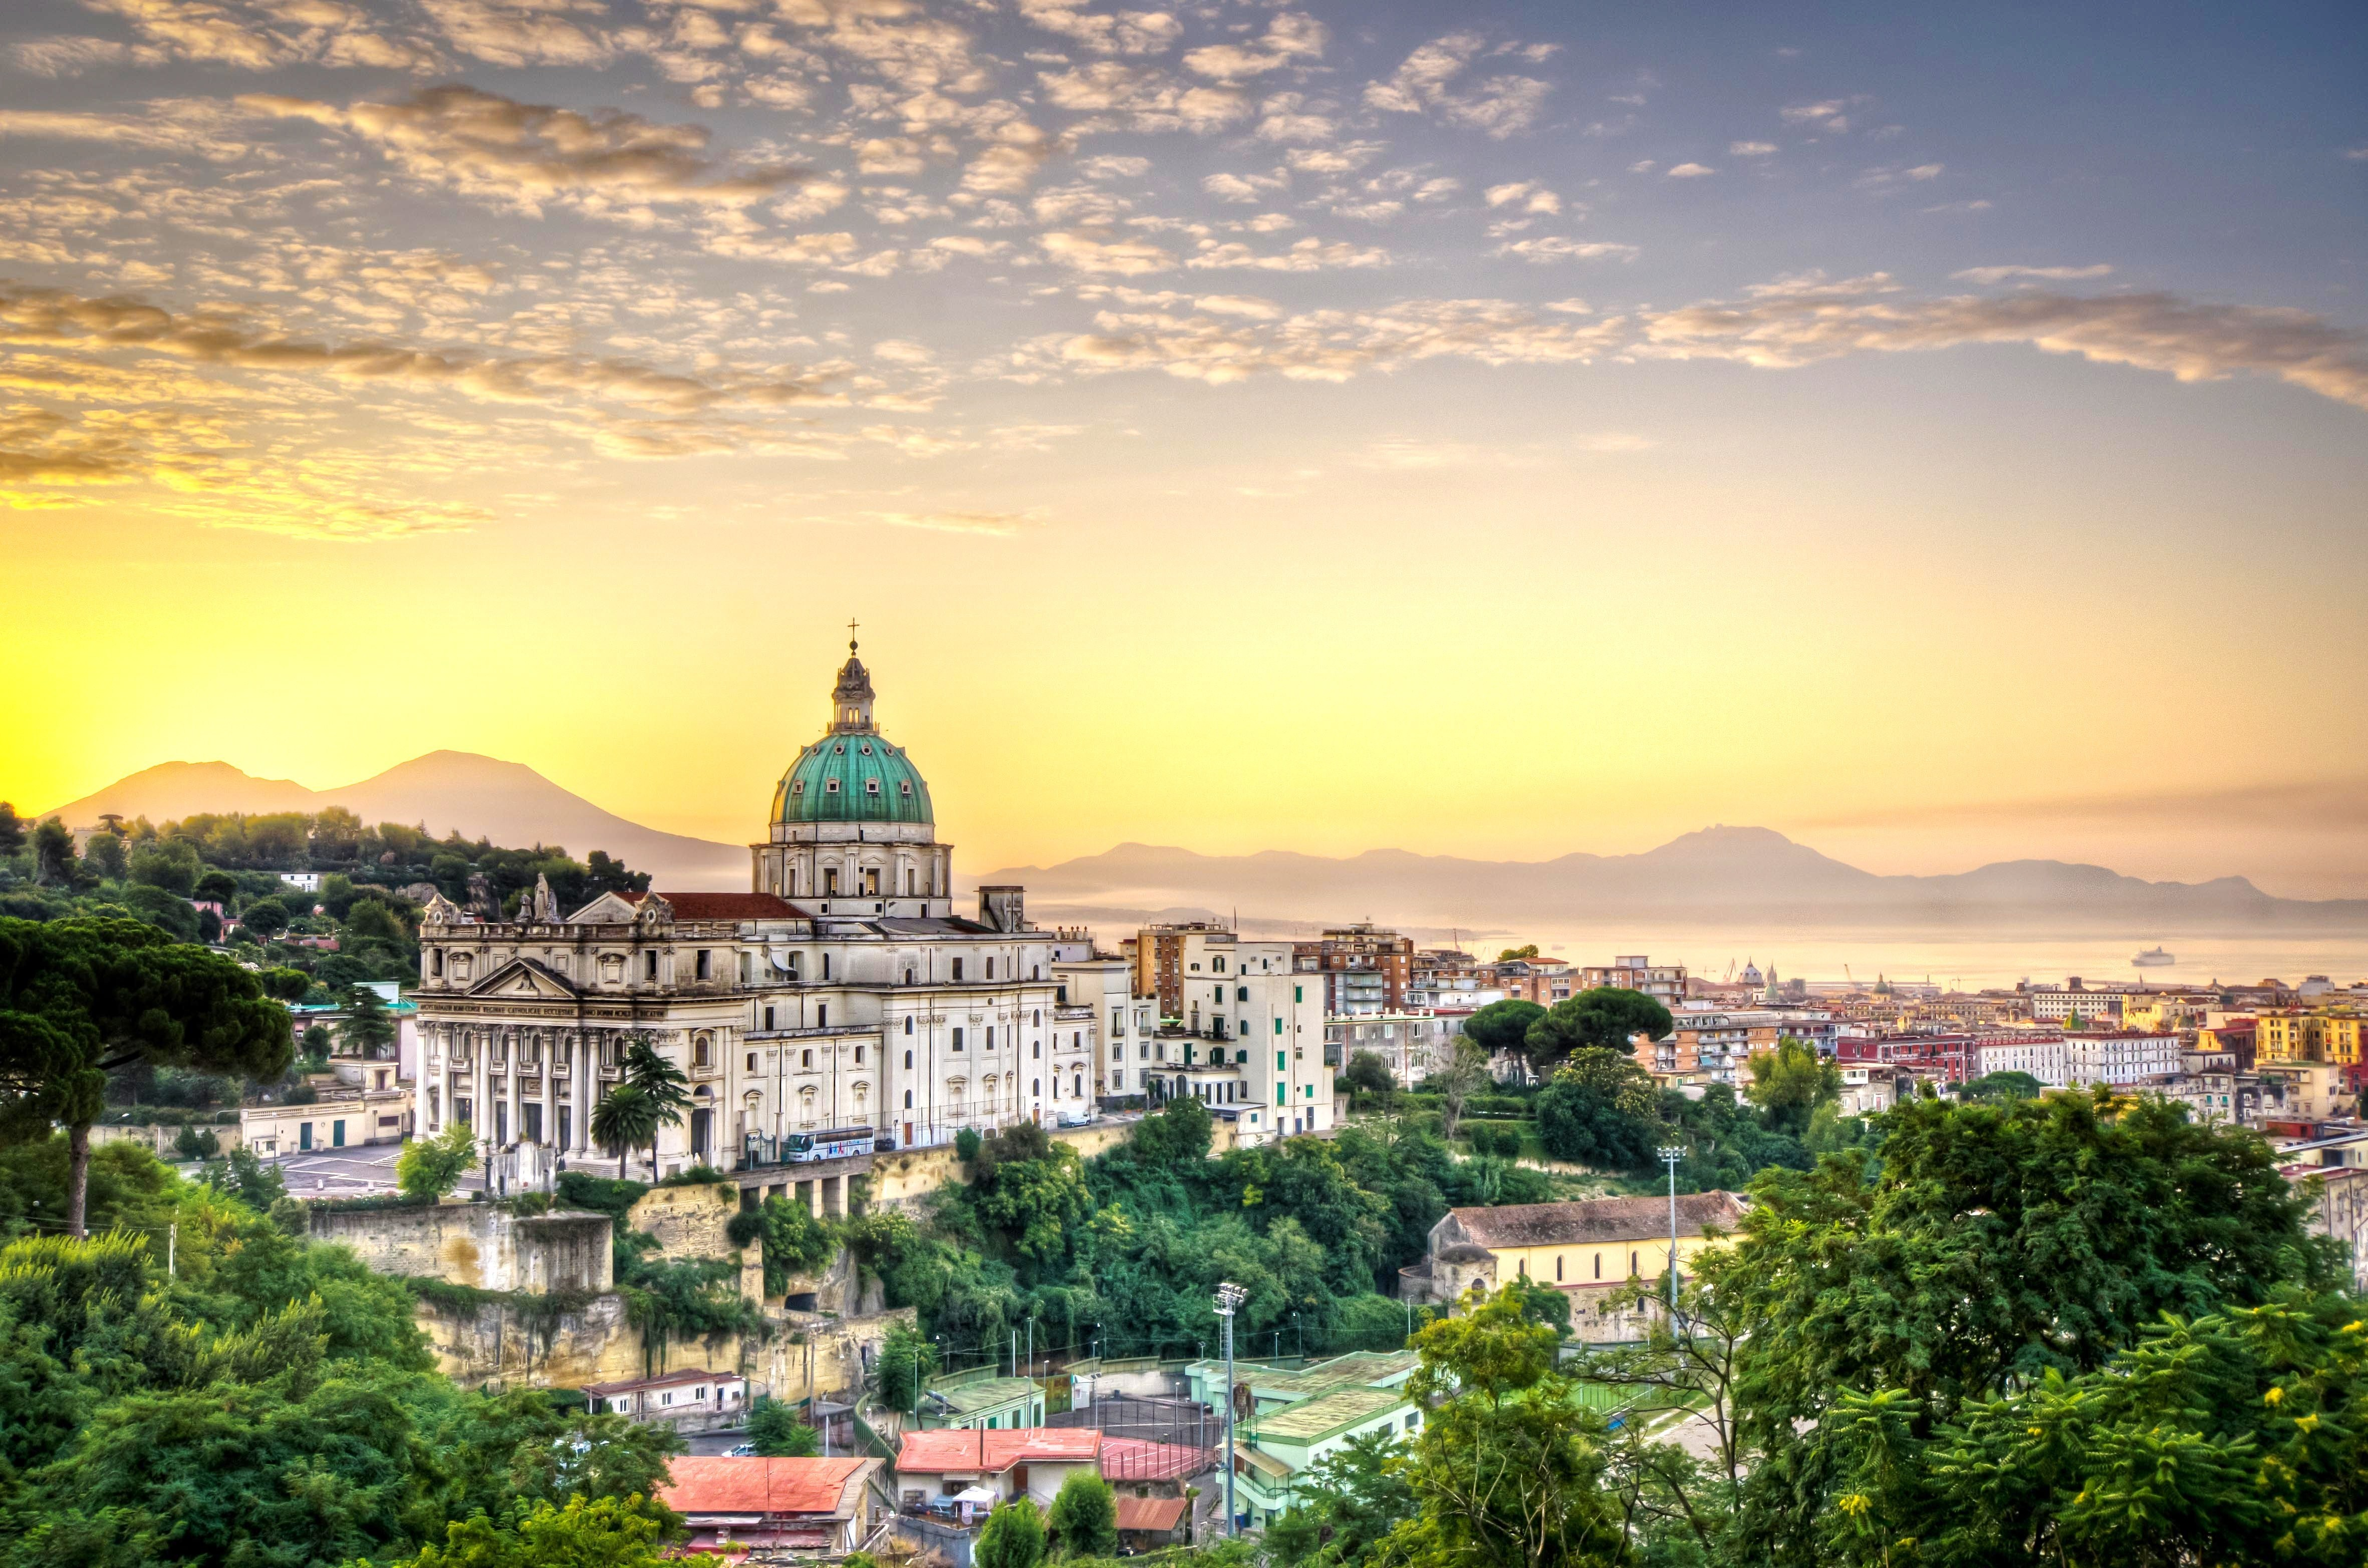 Wallpaper Italy Naples Napoli City Sky Clouds Hotel Travel